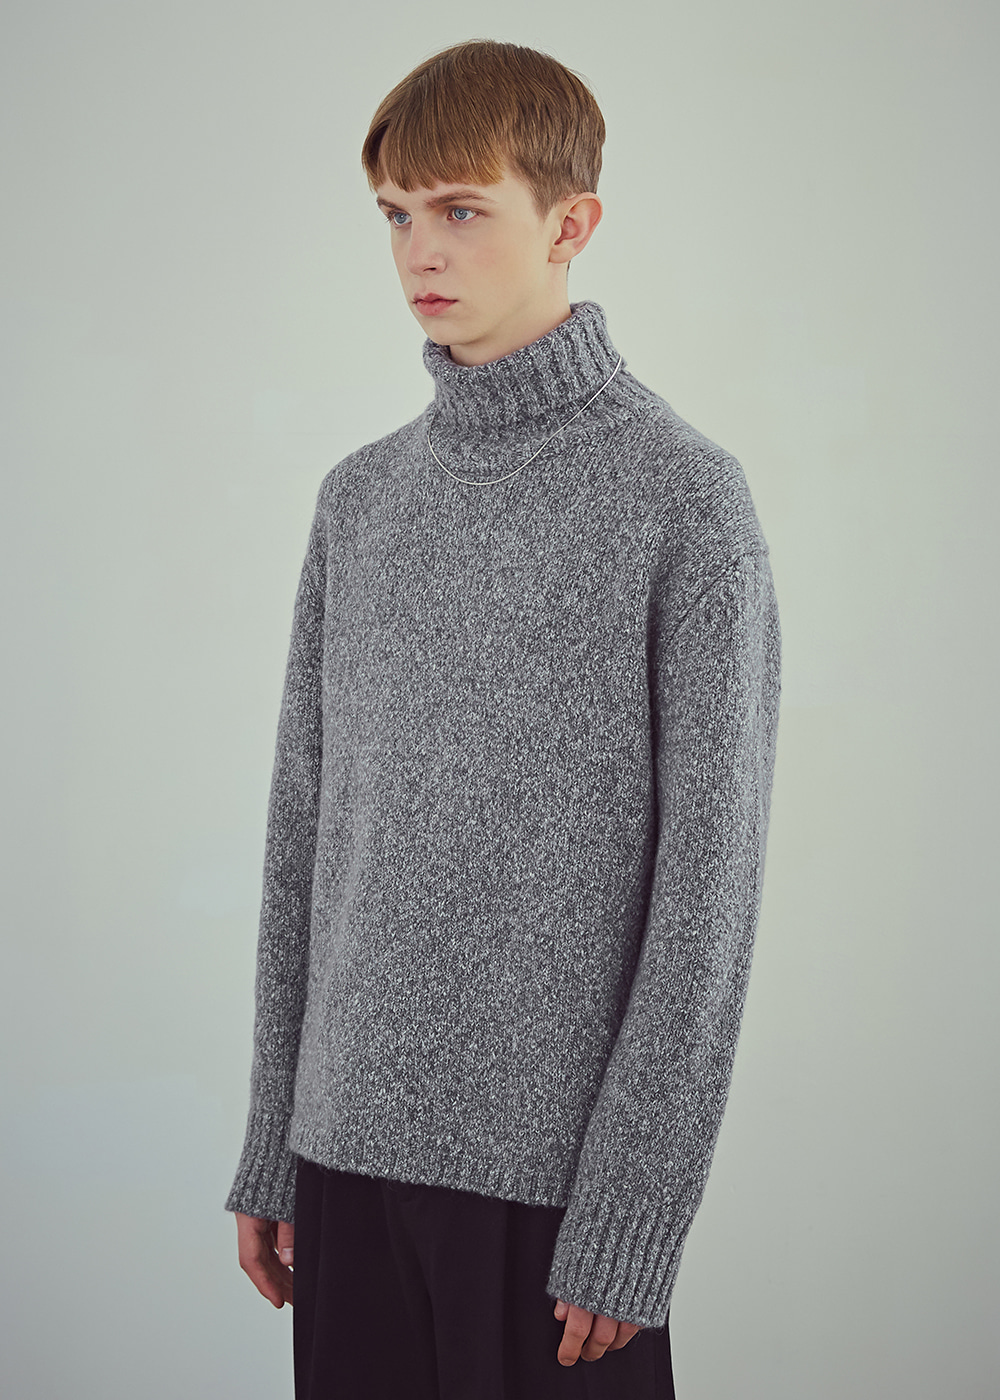 Blank Wool-Blend Roll-neck Sweater - Melange Grey